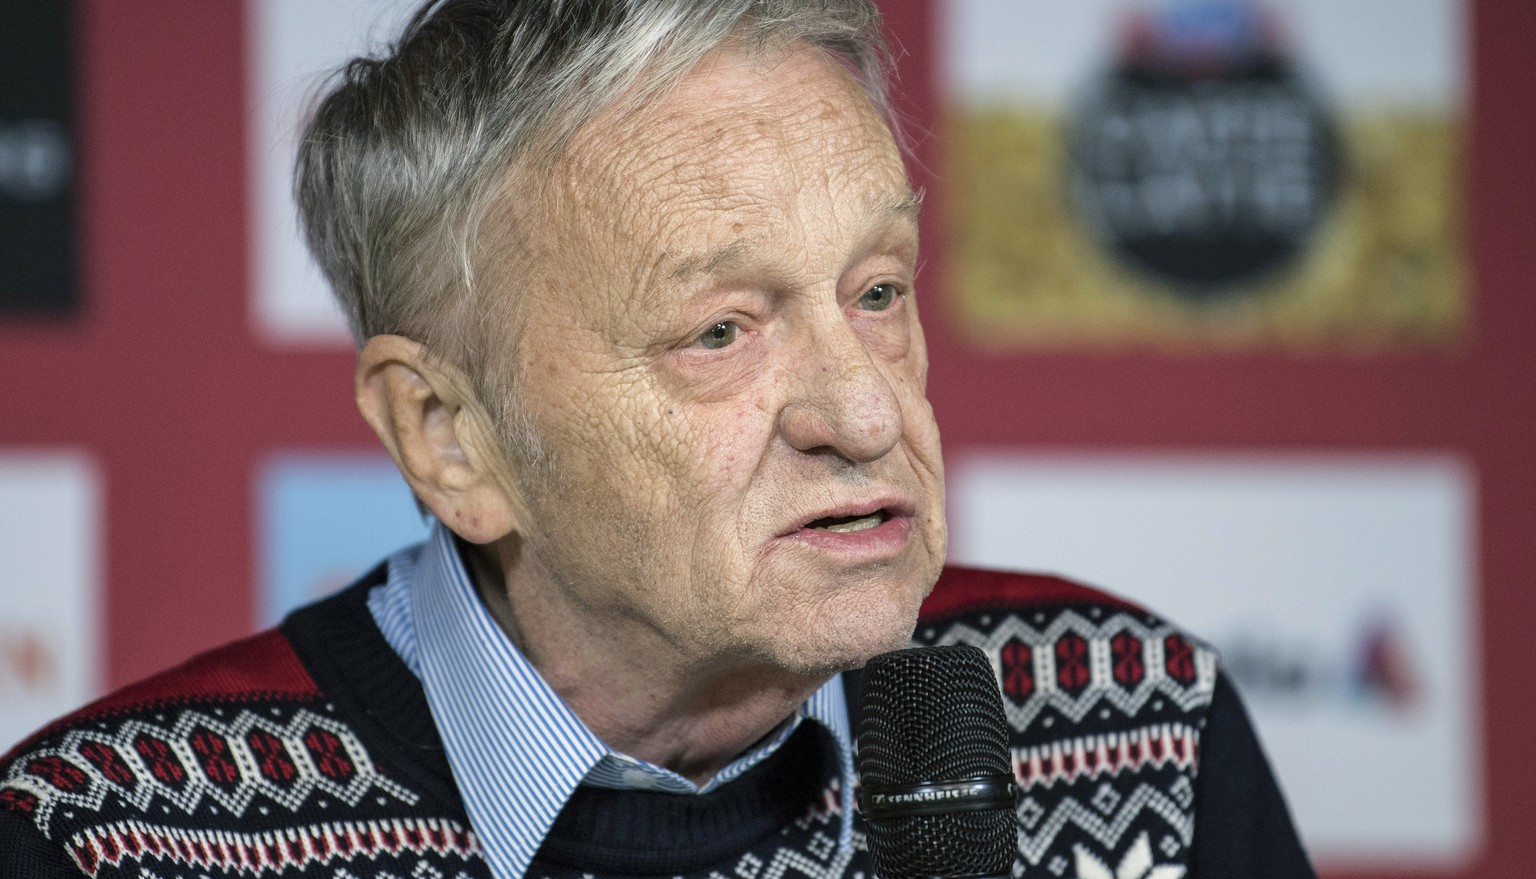 FILE - In this Feb. 19, 2017, file photo, Gian Franco Kasper, president of the International Ski Federation, speaks during a press conference in St. Moritz, Switzerland. A group of winter sports athletes and the world's biggest snowboard maker want the president of the International Ski Federation to resign after he spoke of